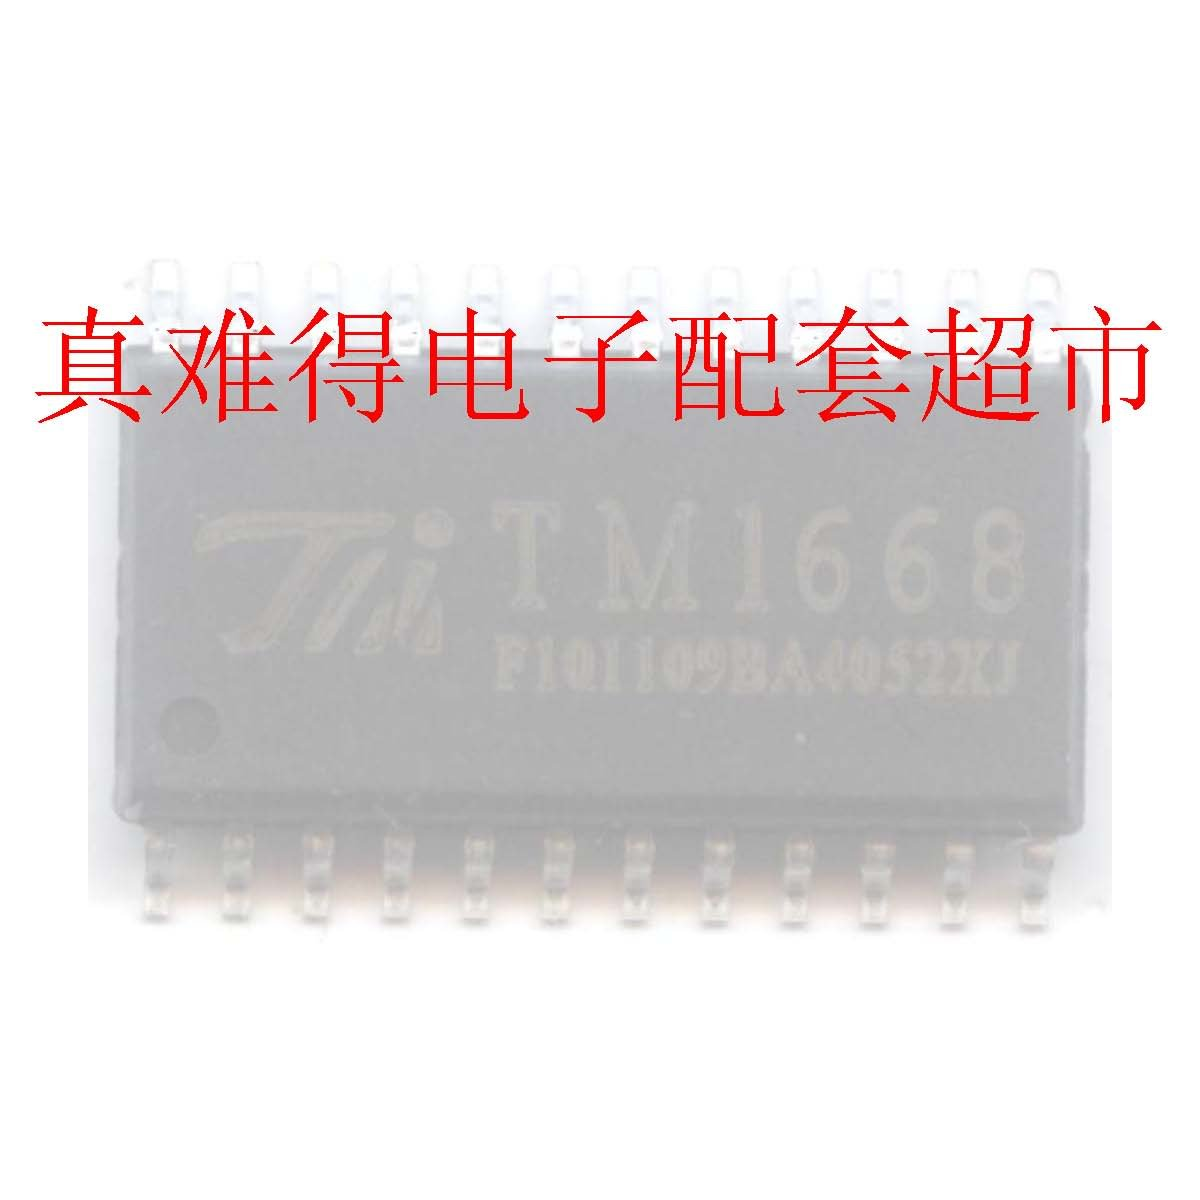 TM1668 LED drivers control the dedicated circuit(China (Mainland))